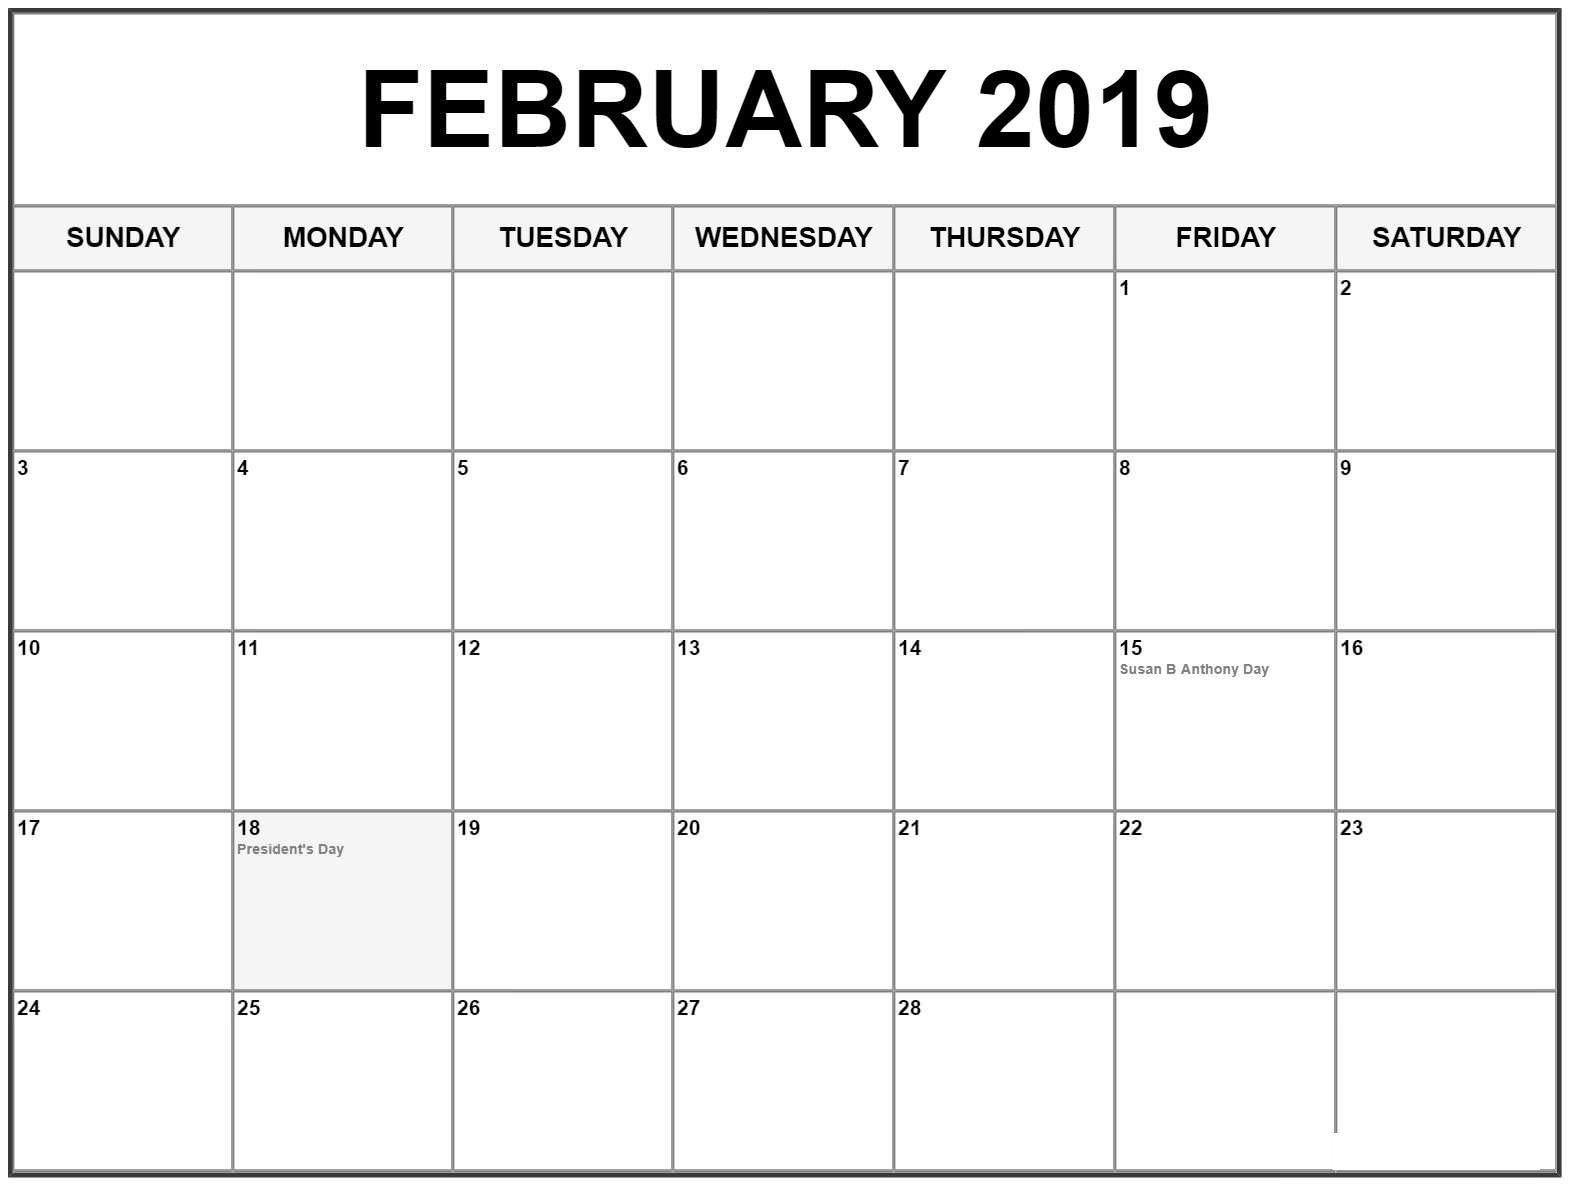 February 2019 Calendar With Holidays Dates (With Images